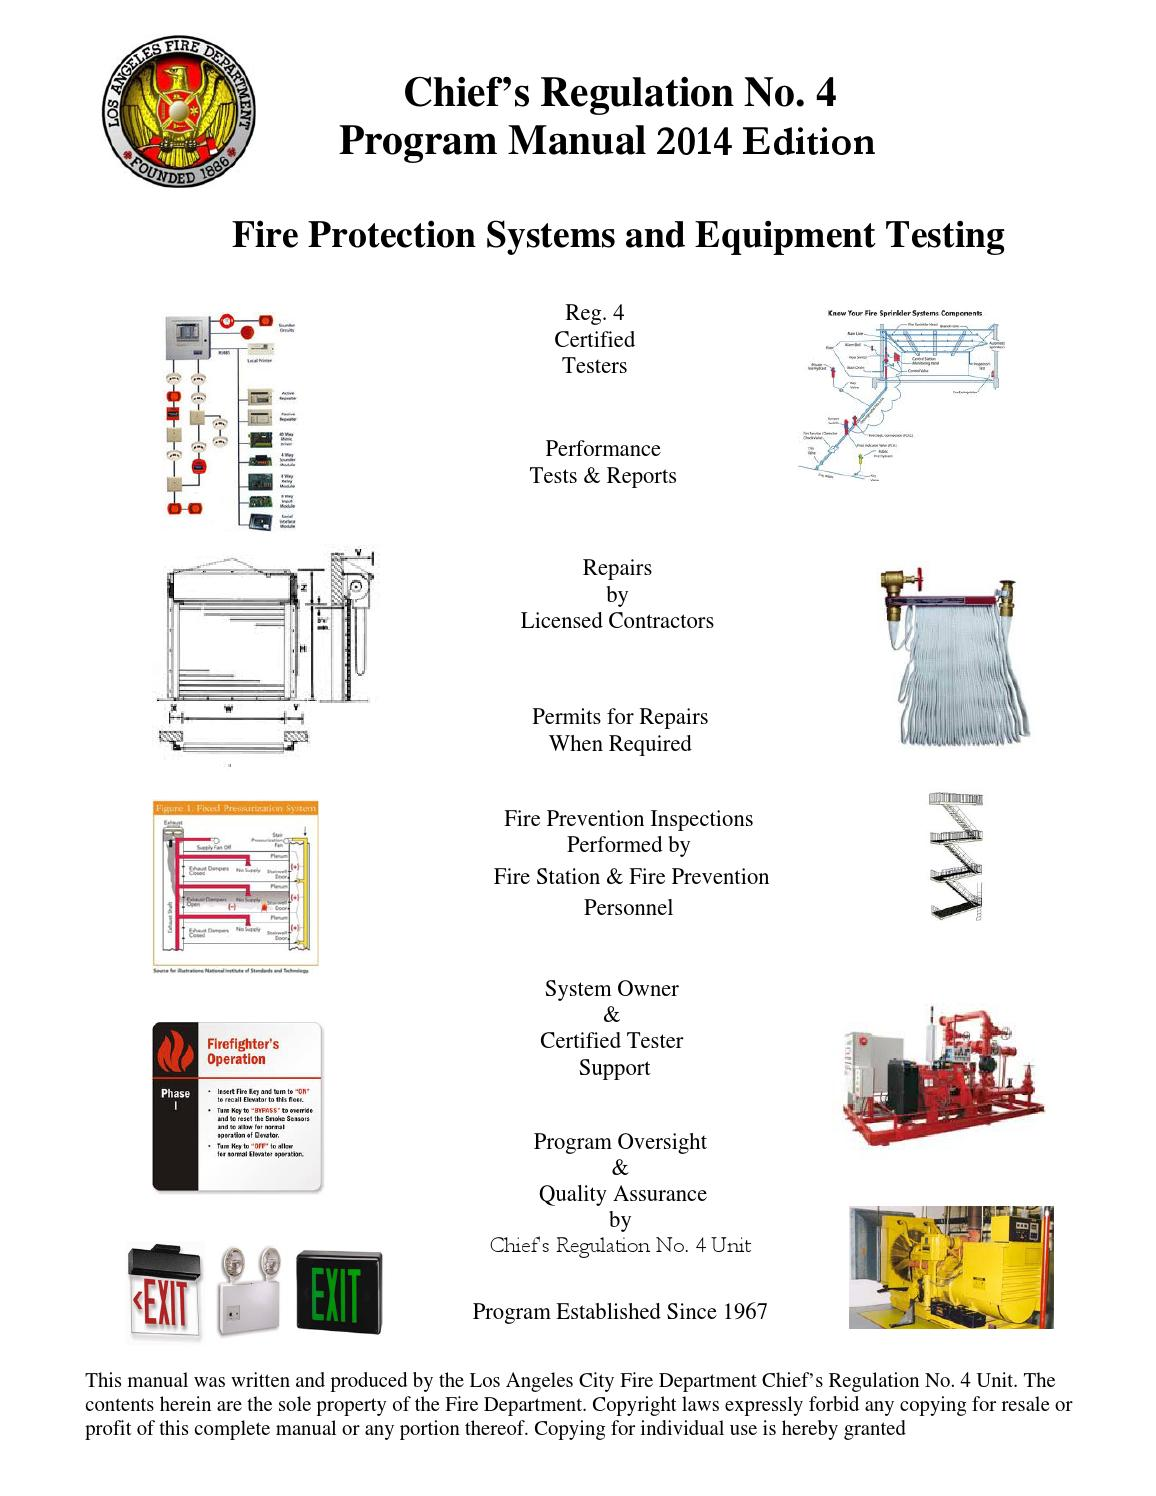 LAFD Chief's Regulation No 4 Program Manual 2014 by Los Angeles Fire  Department - issuu